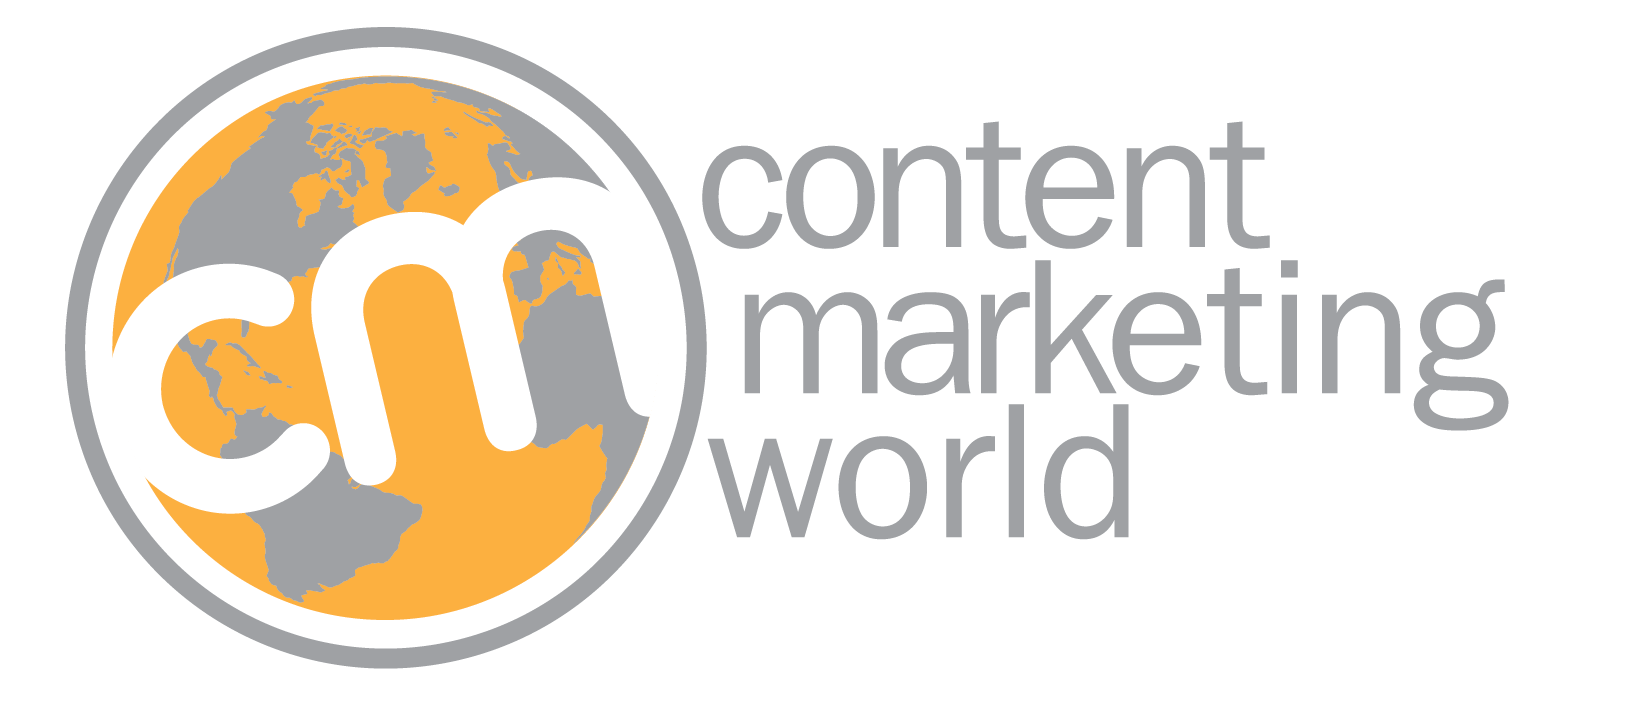 Content Marketing World 2019 Conference